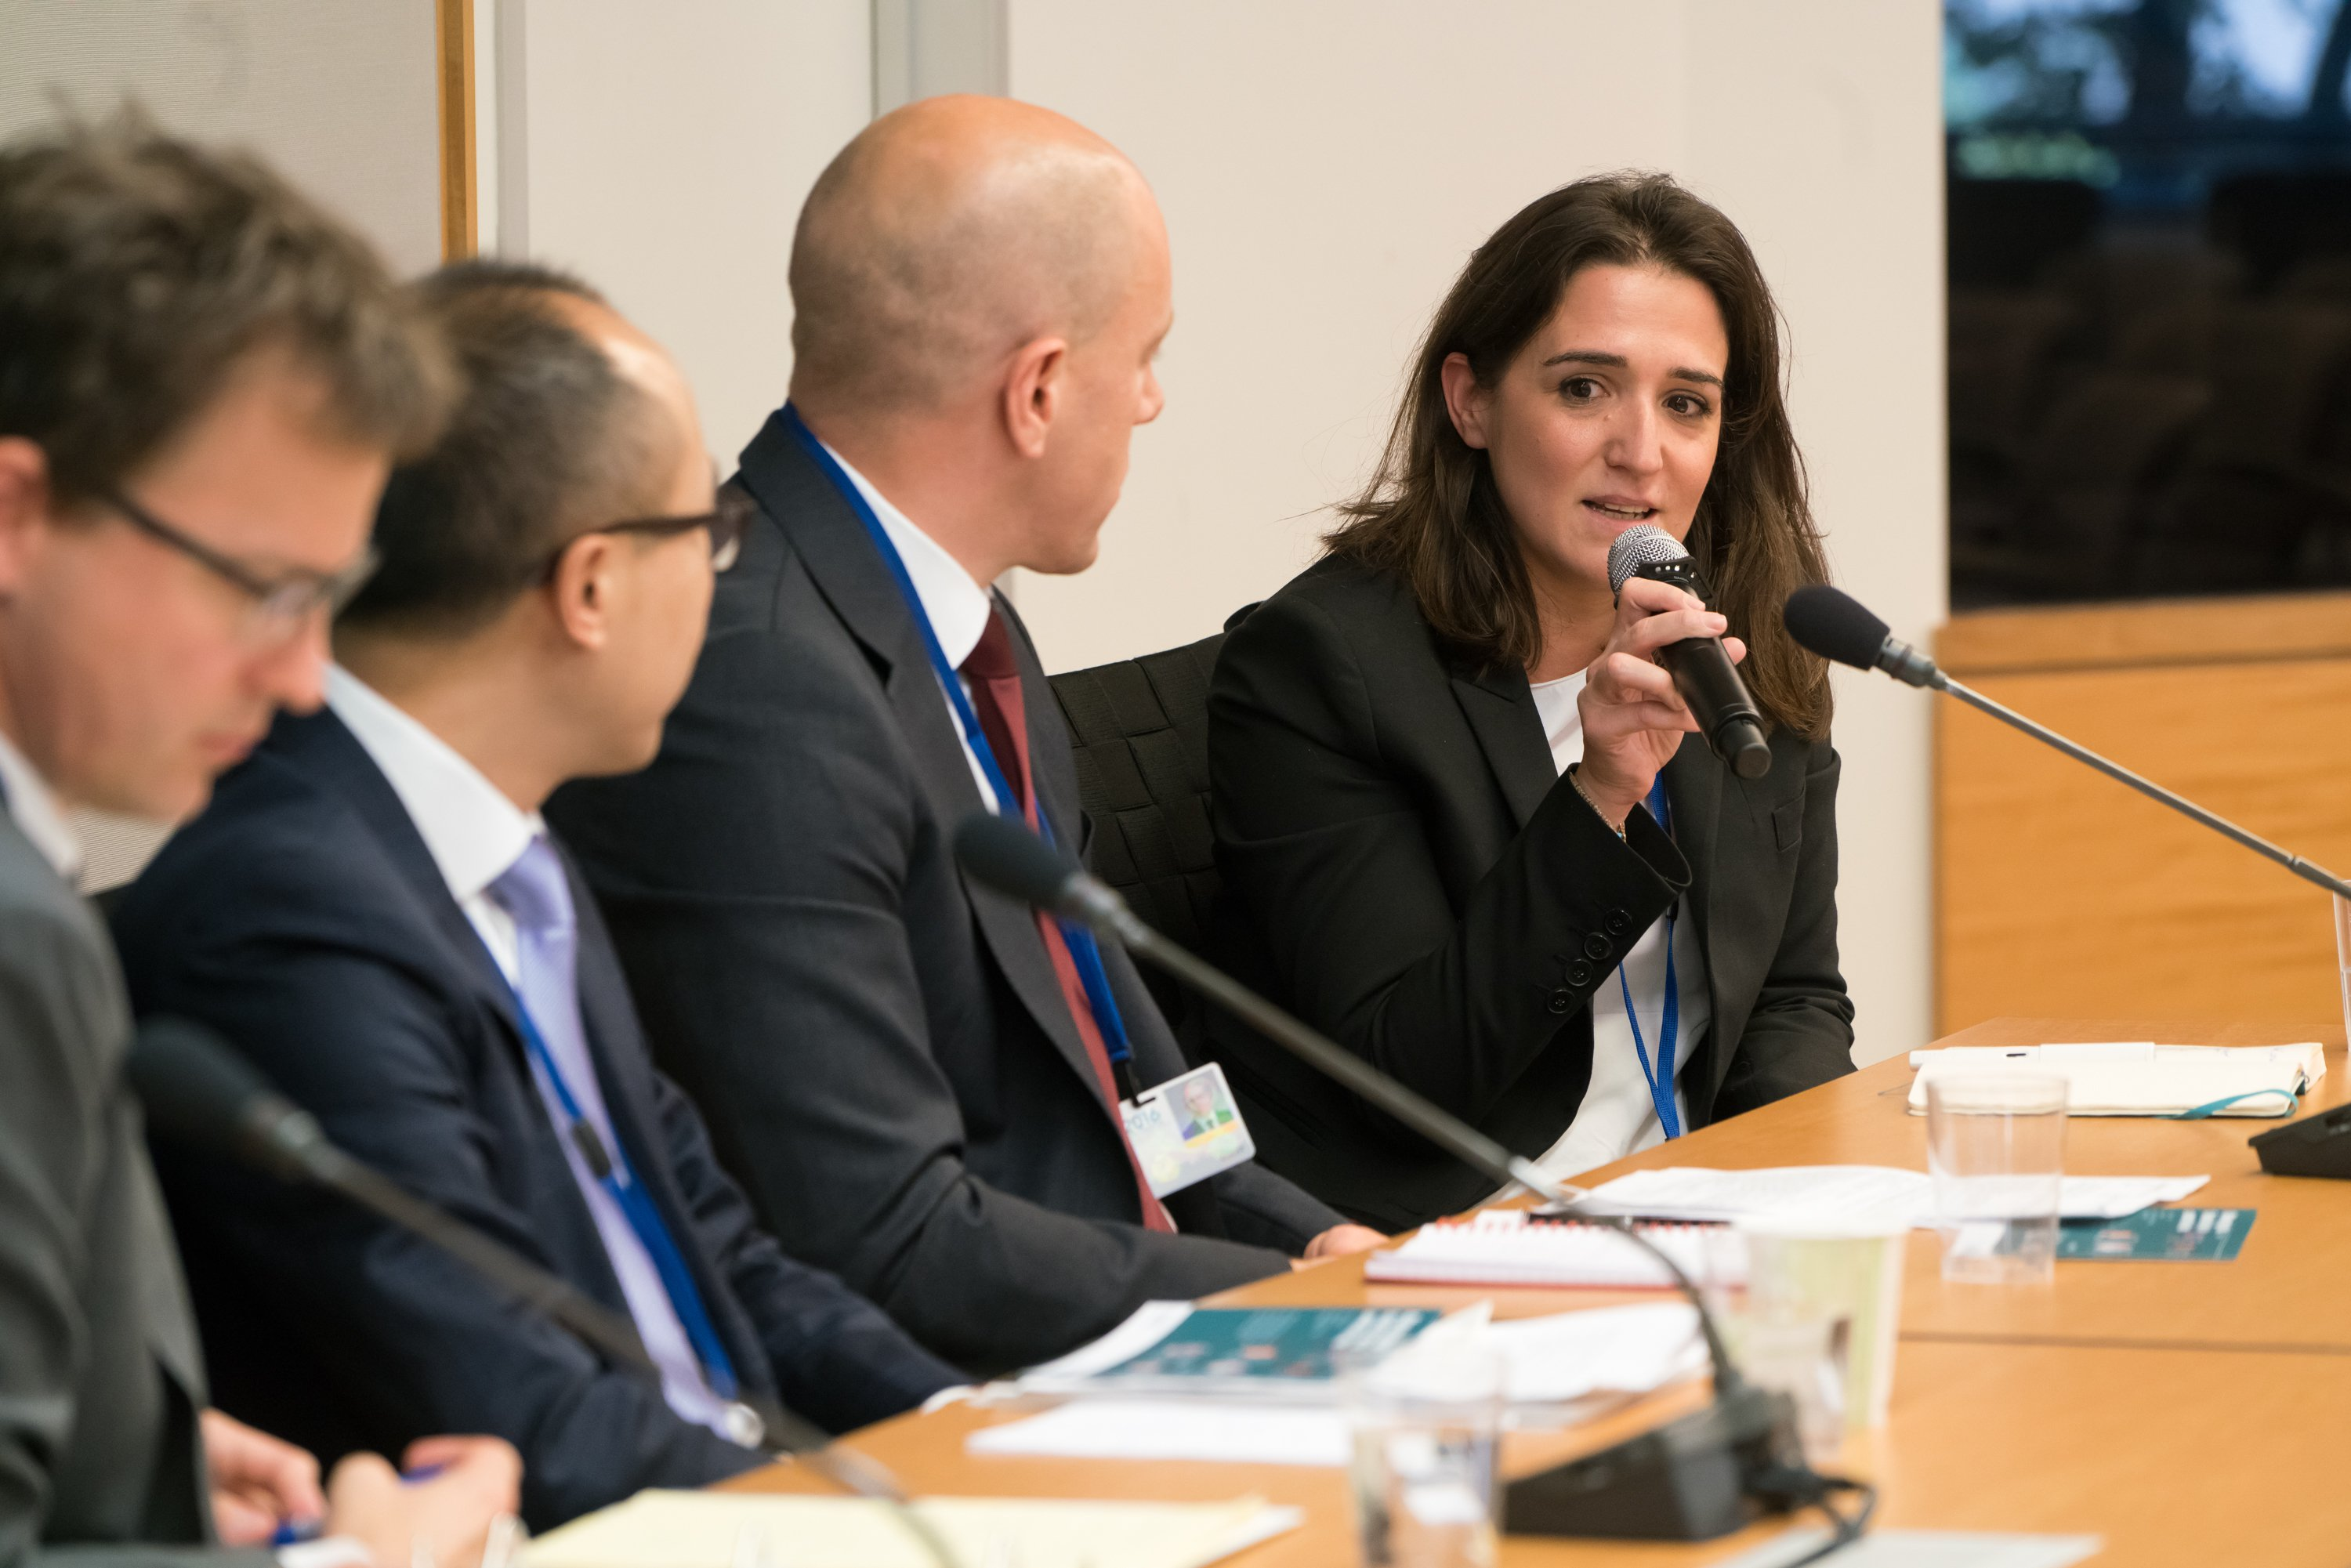 Senior Research Fellow and Team Leader, Phyllis Papadavid, speaking at the Managing global financial risks in uncertain times event